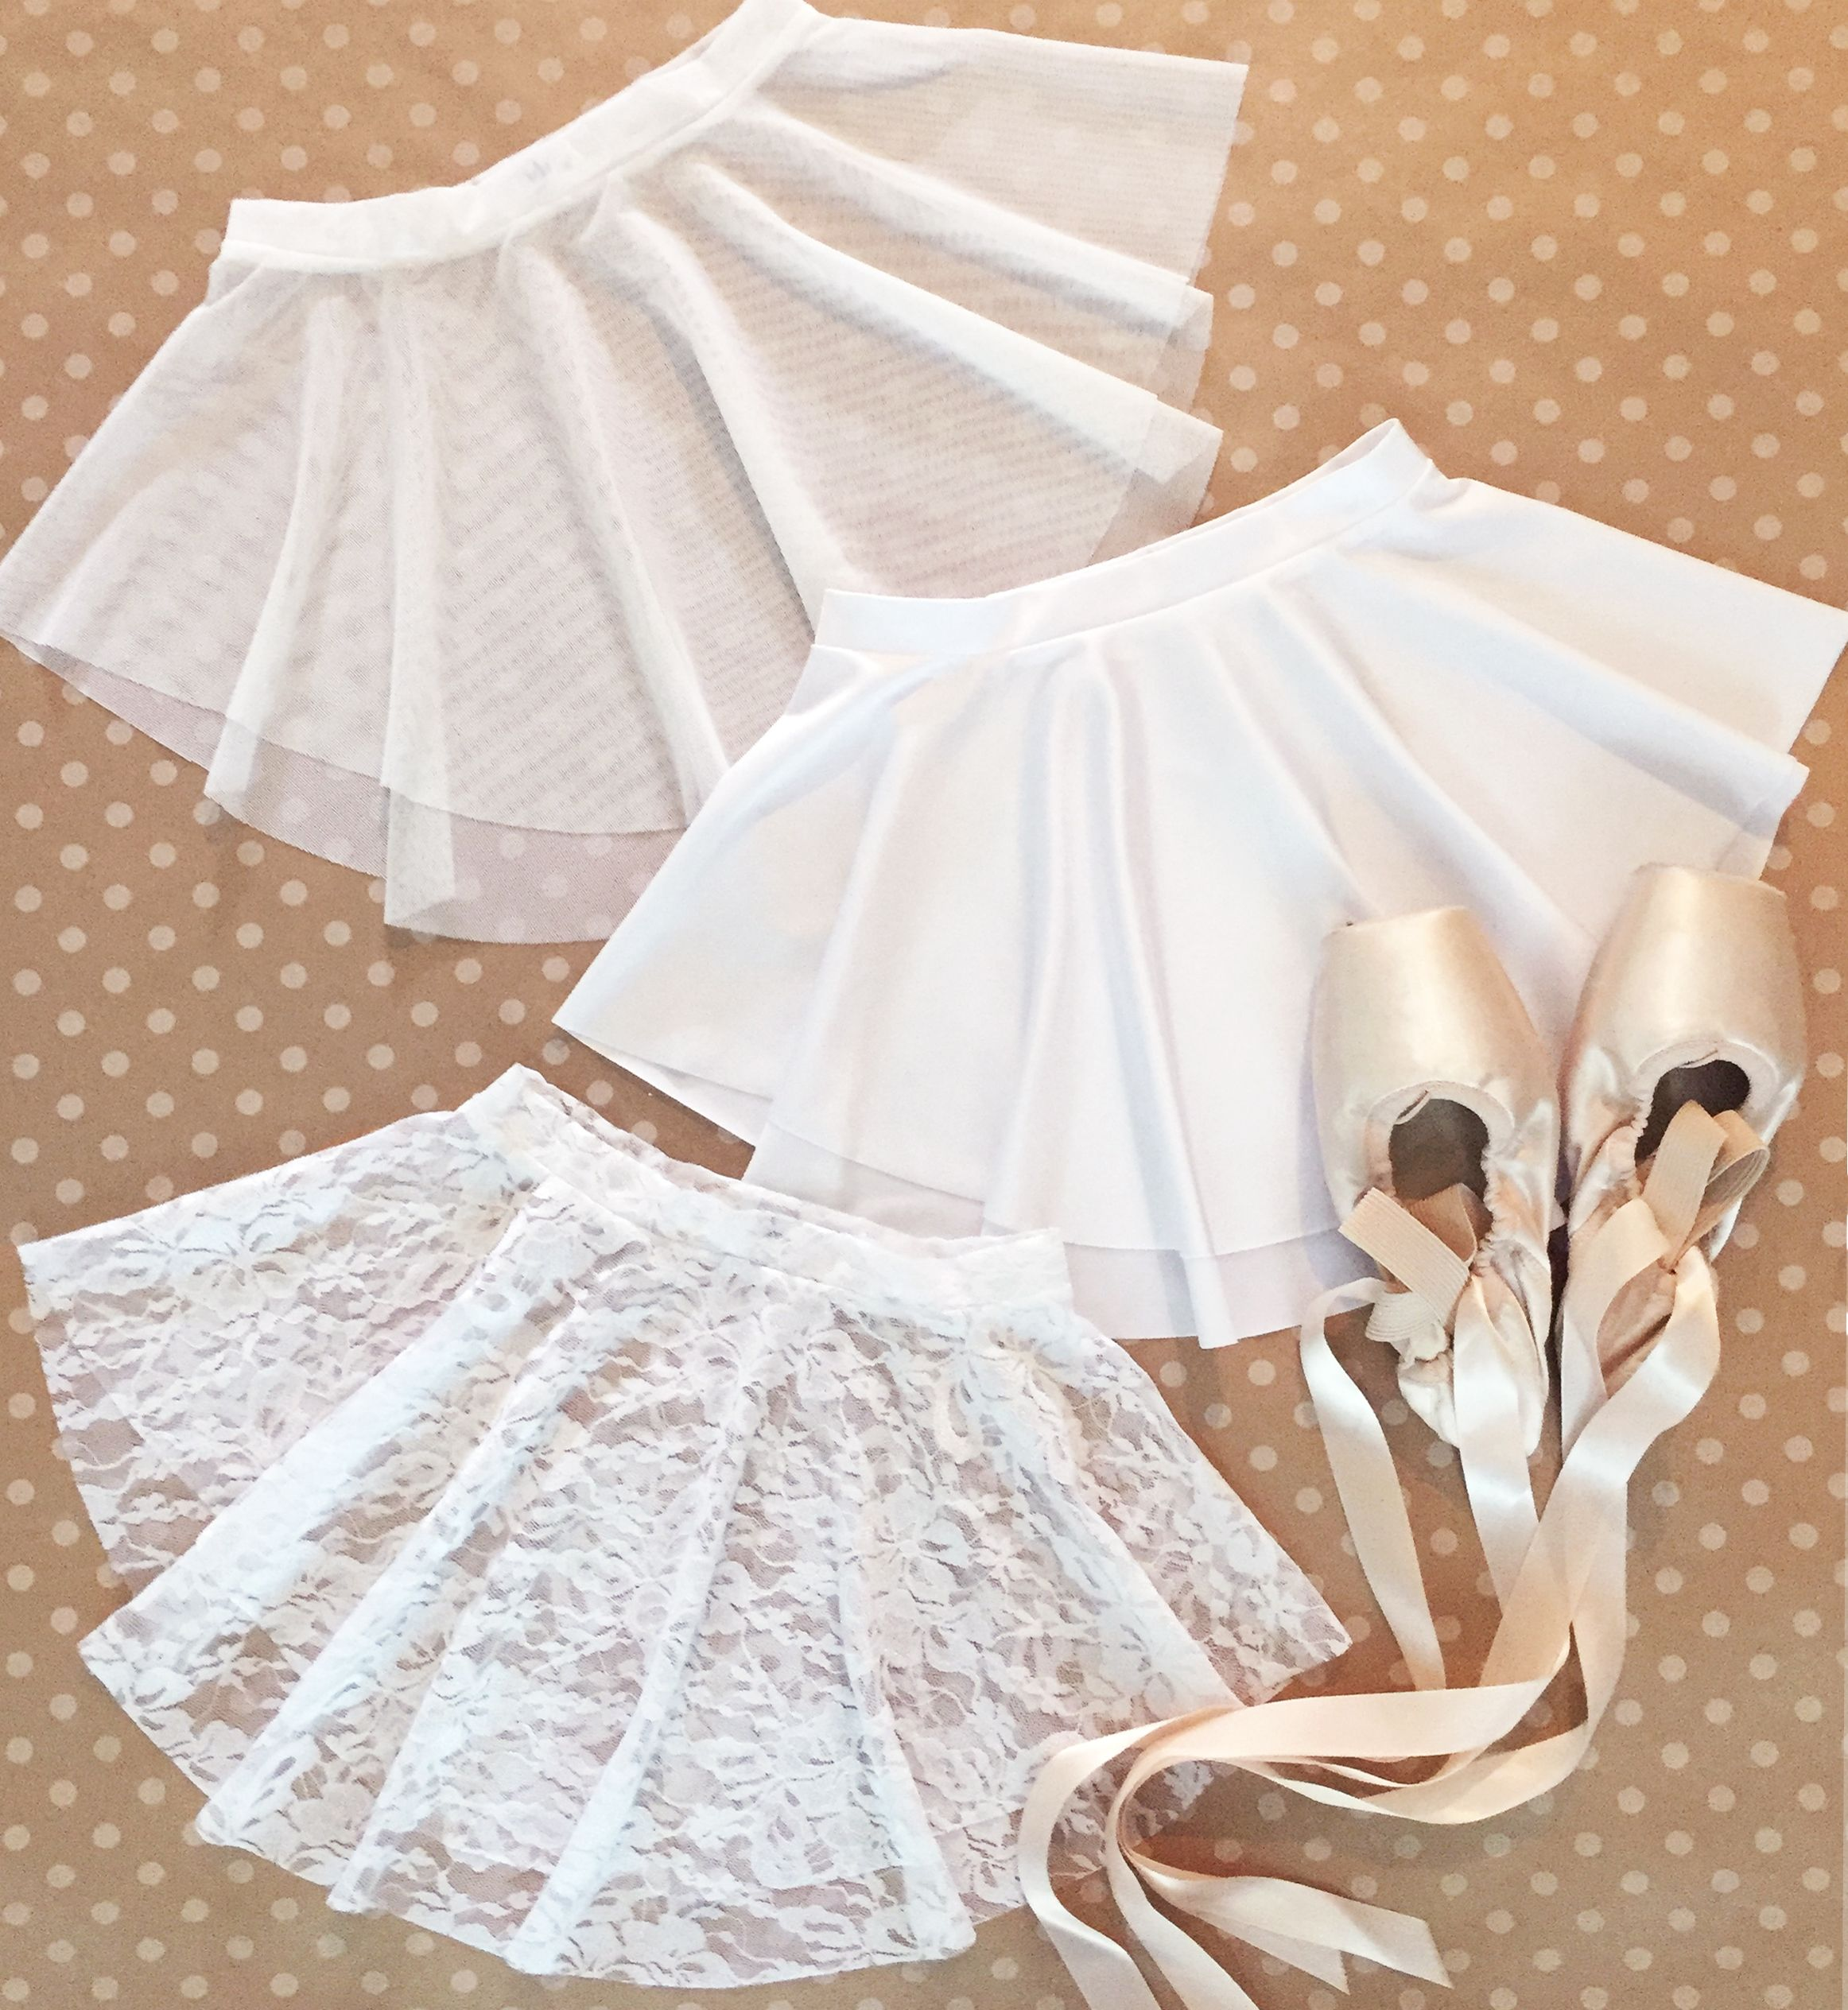 Royall Dancewear WHITE skirt collection- perfect for your